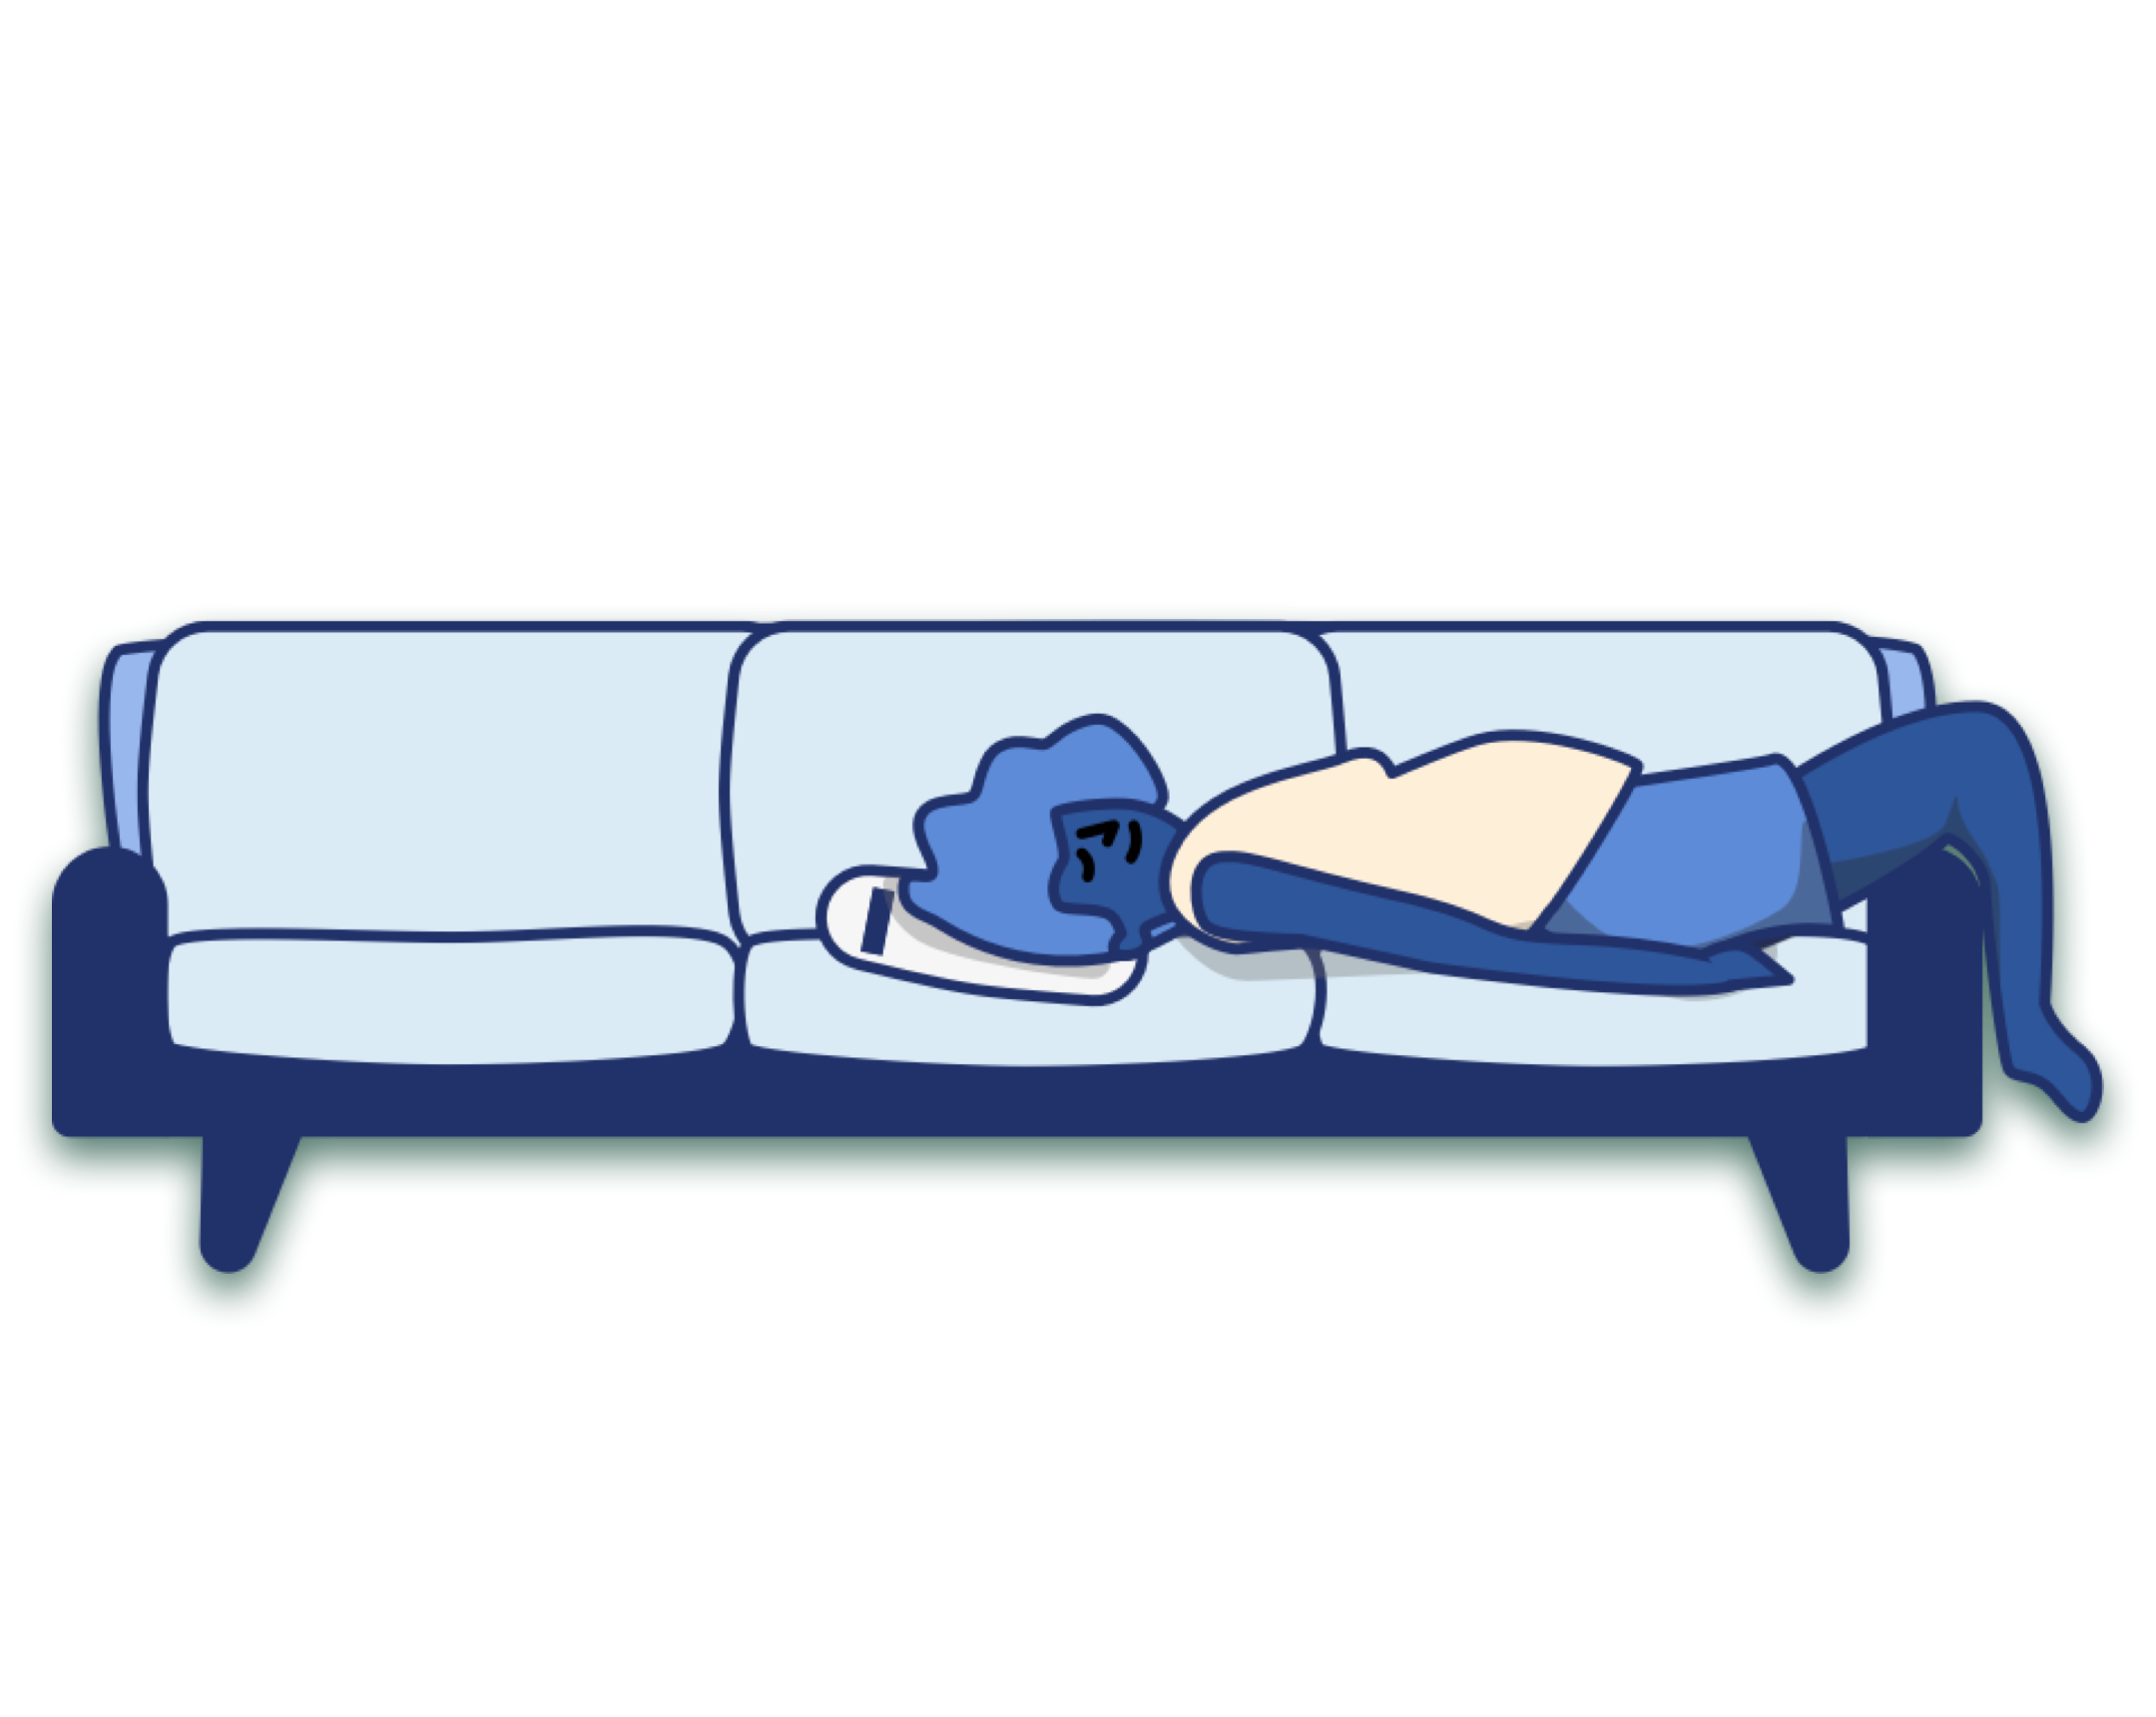 A blue character lounges on the couch with a Casper pillow